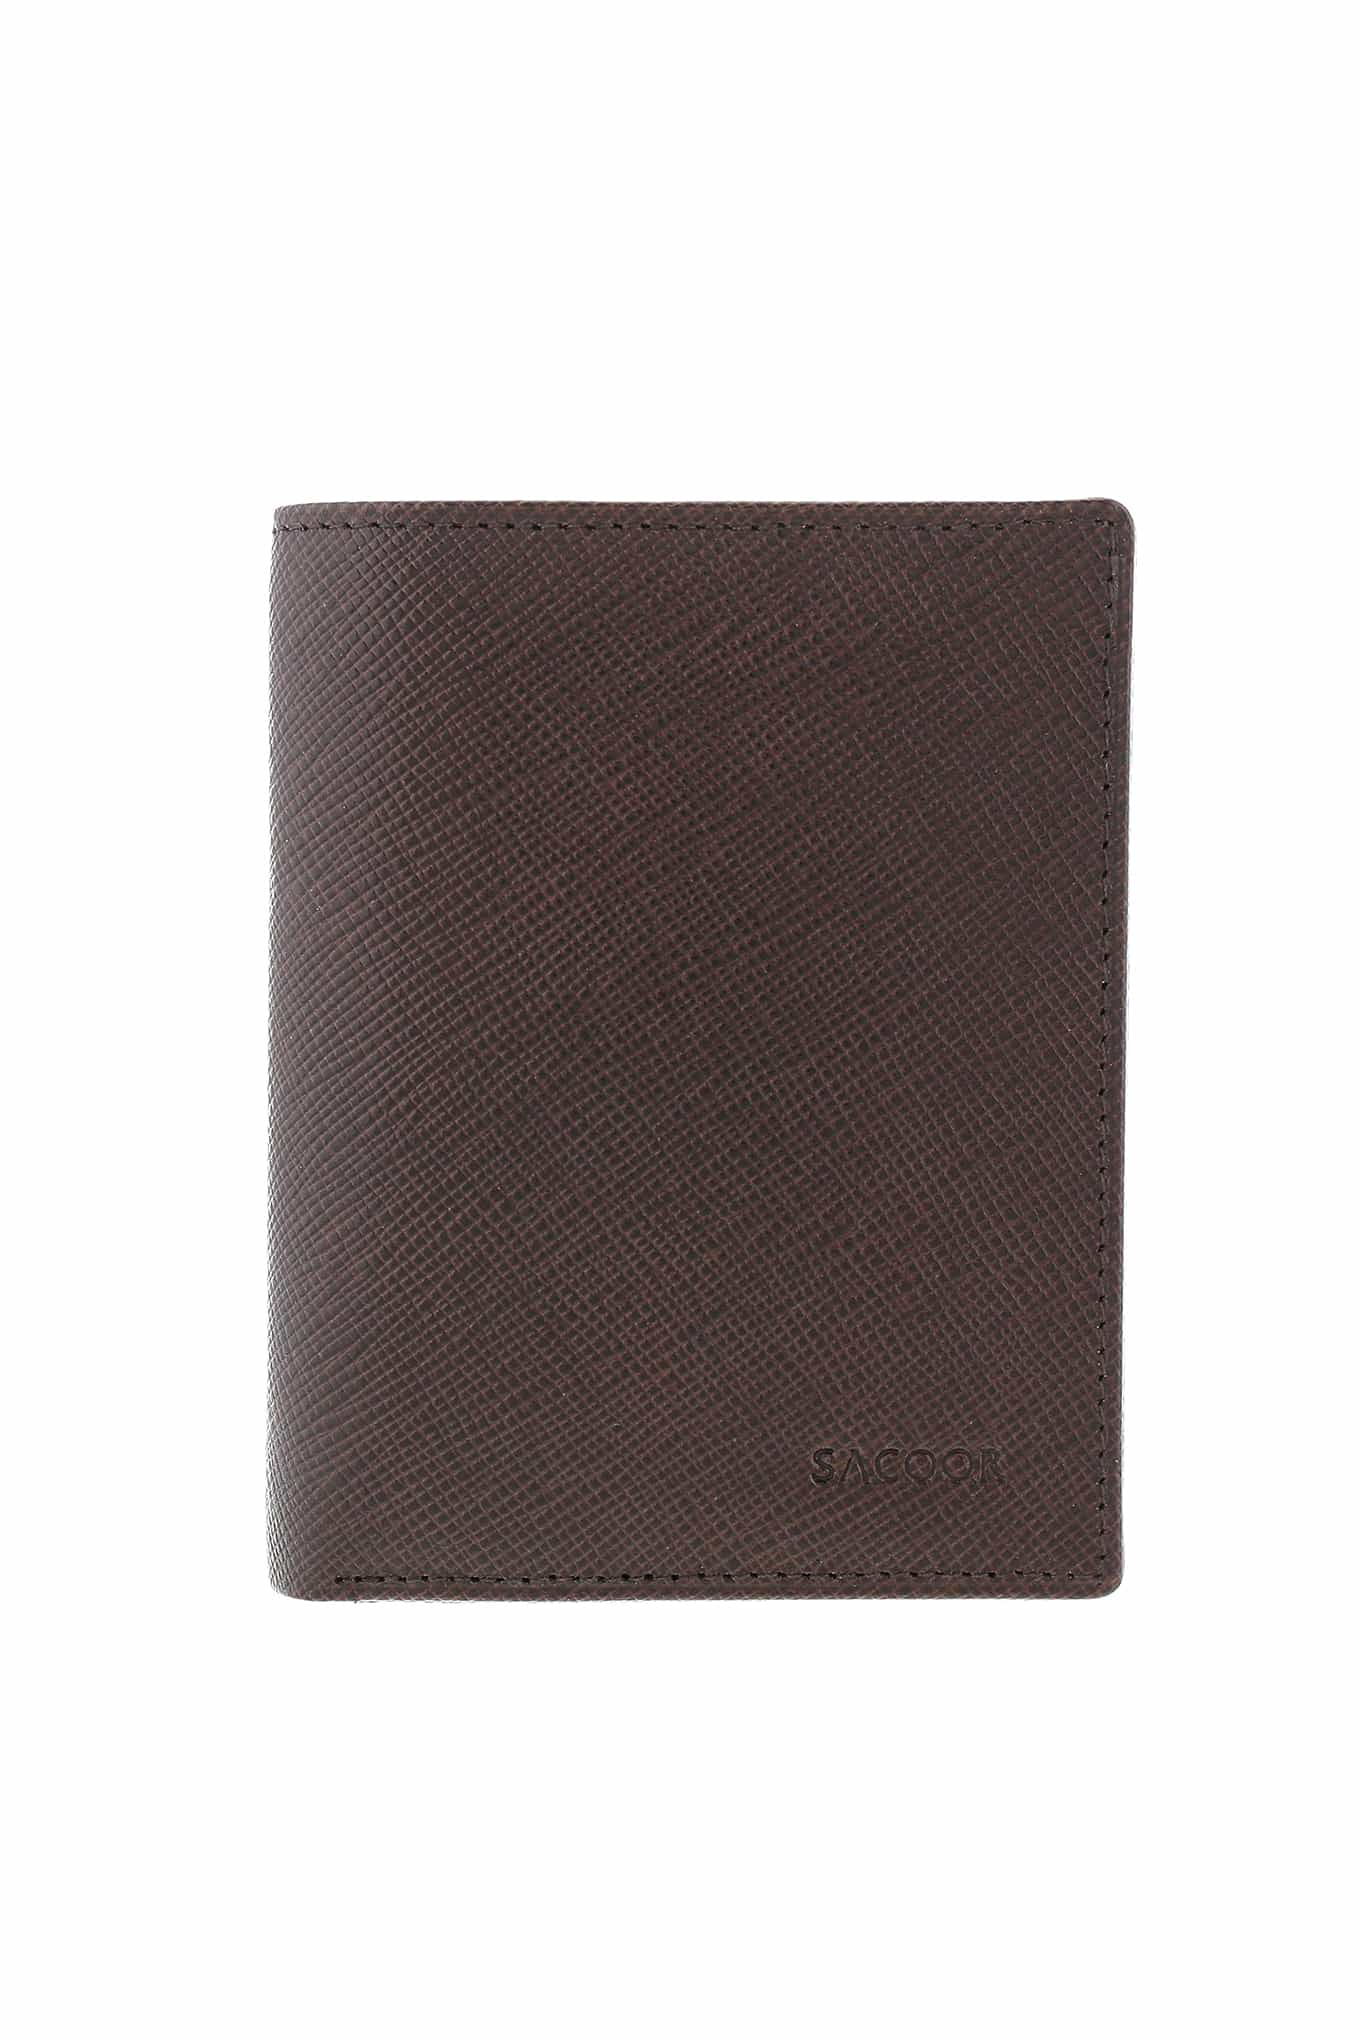 Wallet Chocolate Casual Man